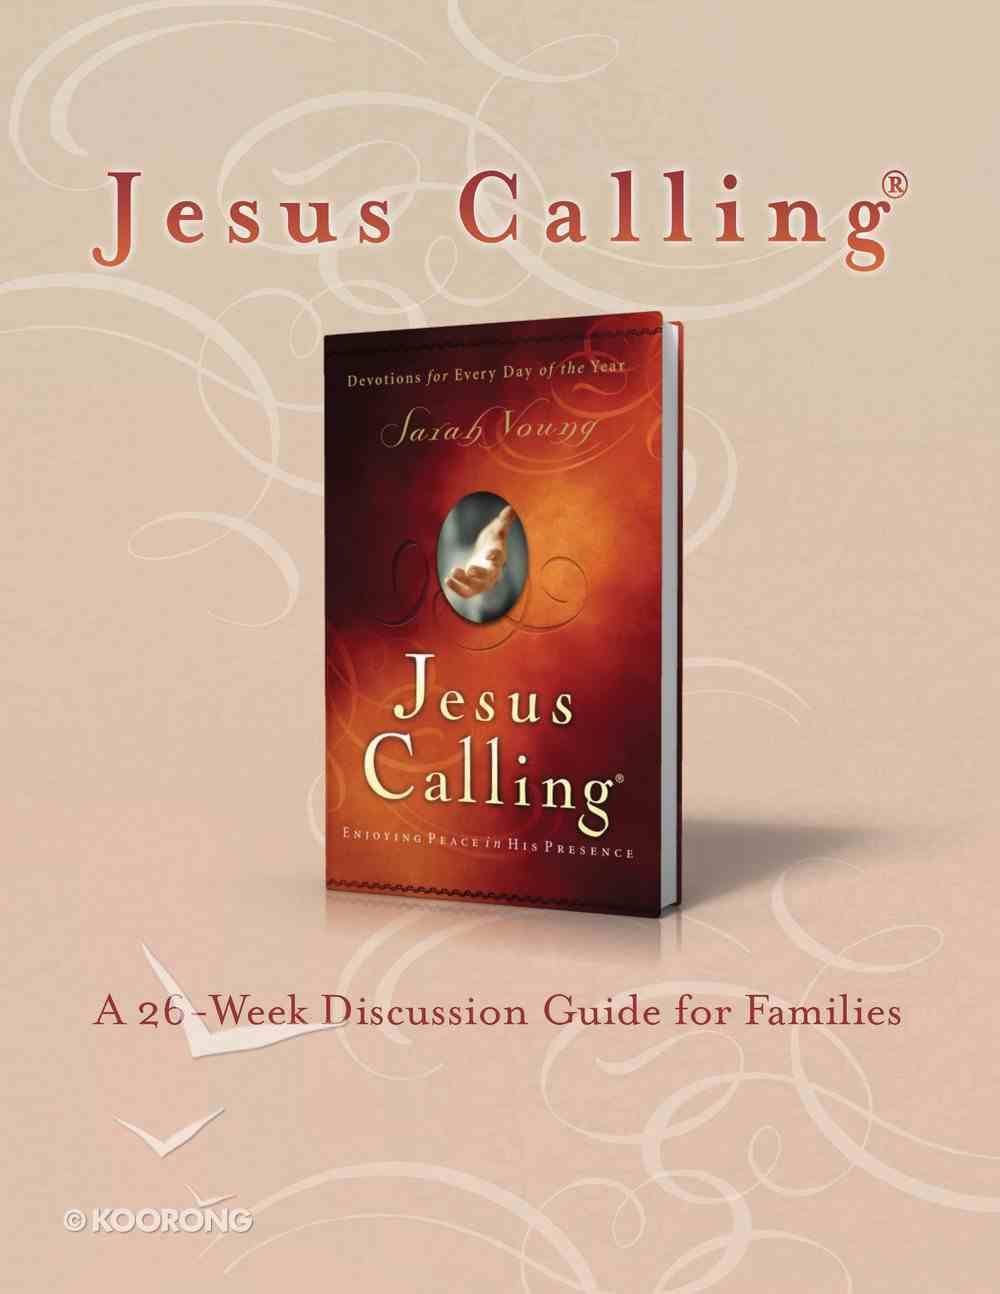 Jesus Calling Book Club Discussion Guide For Families eBook